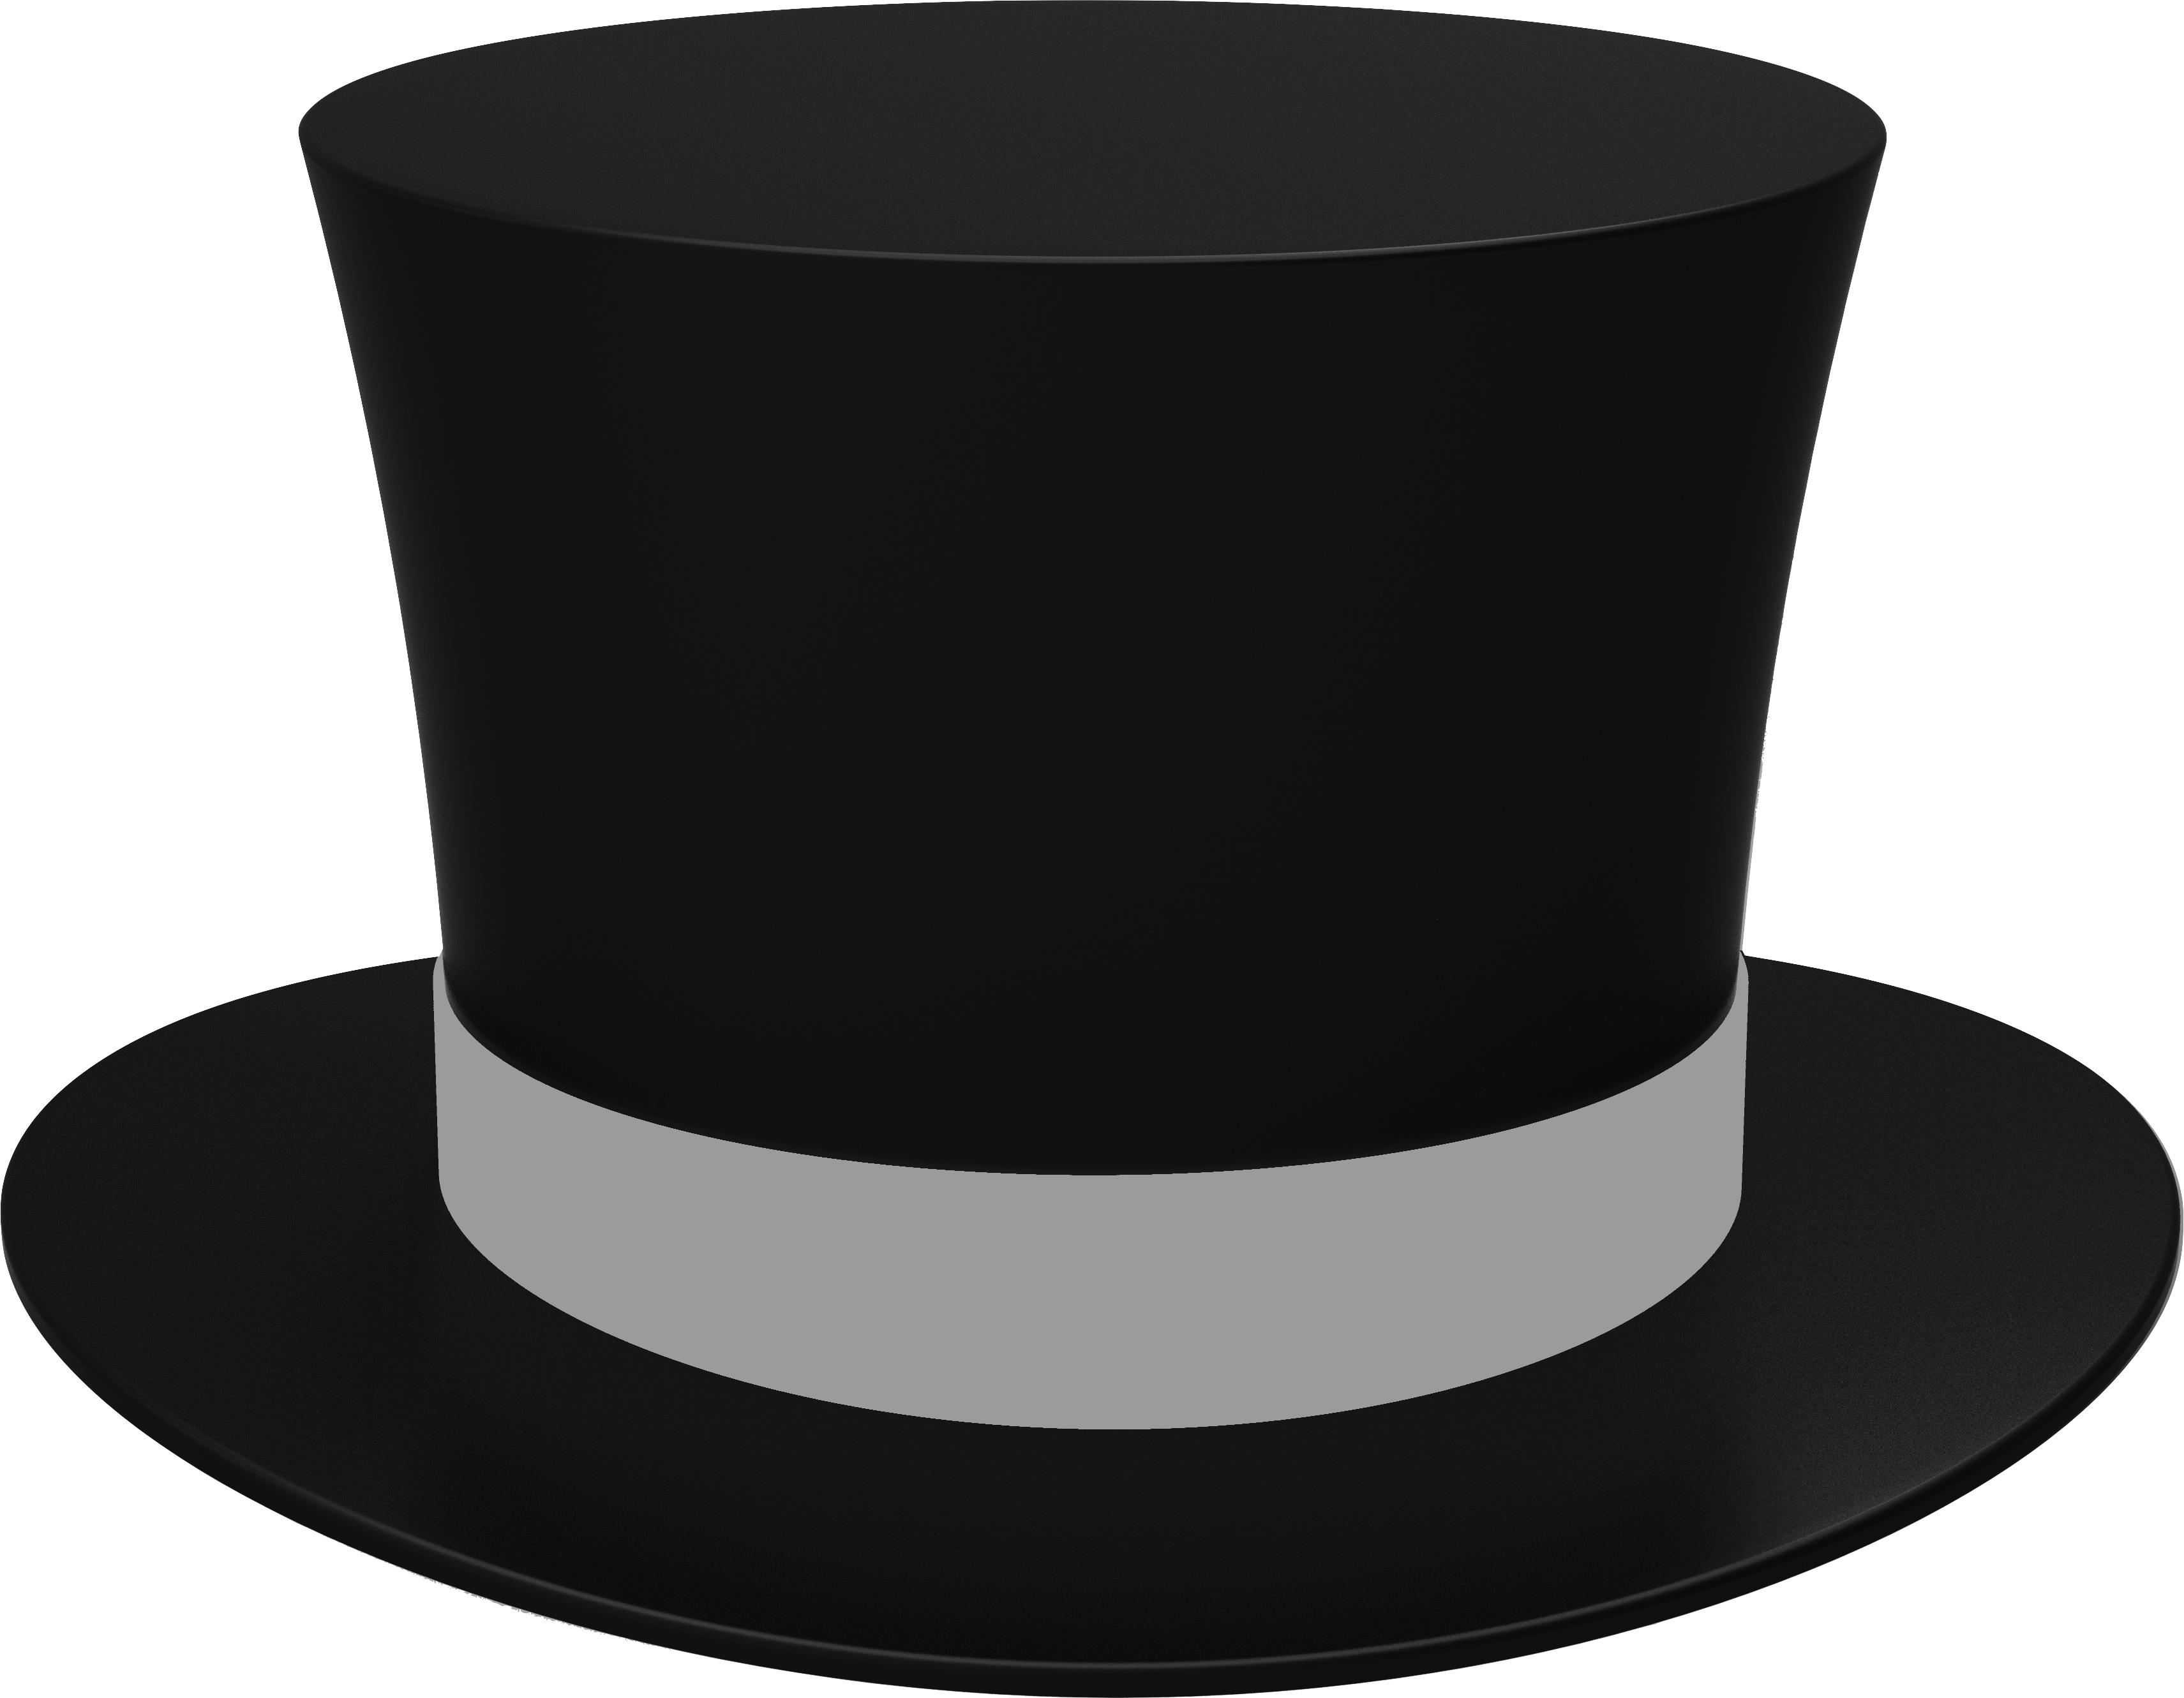 Top hat money clipart banner free library Hats PNG in High Resolution | Web Icons PNG banner free library